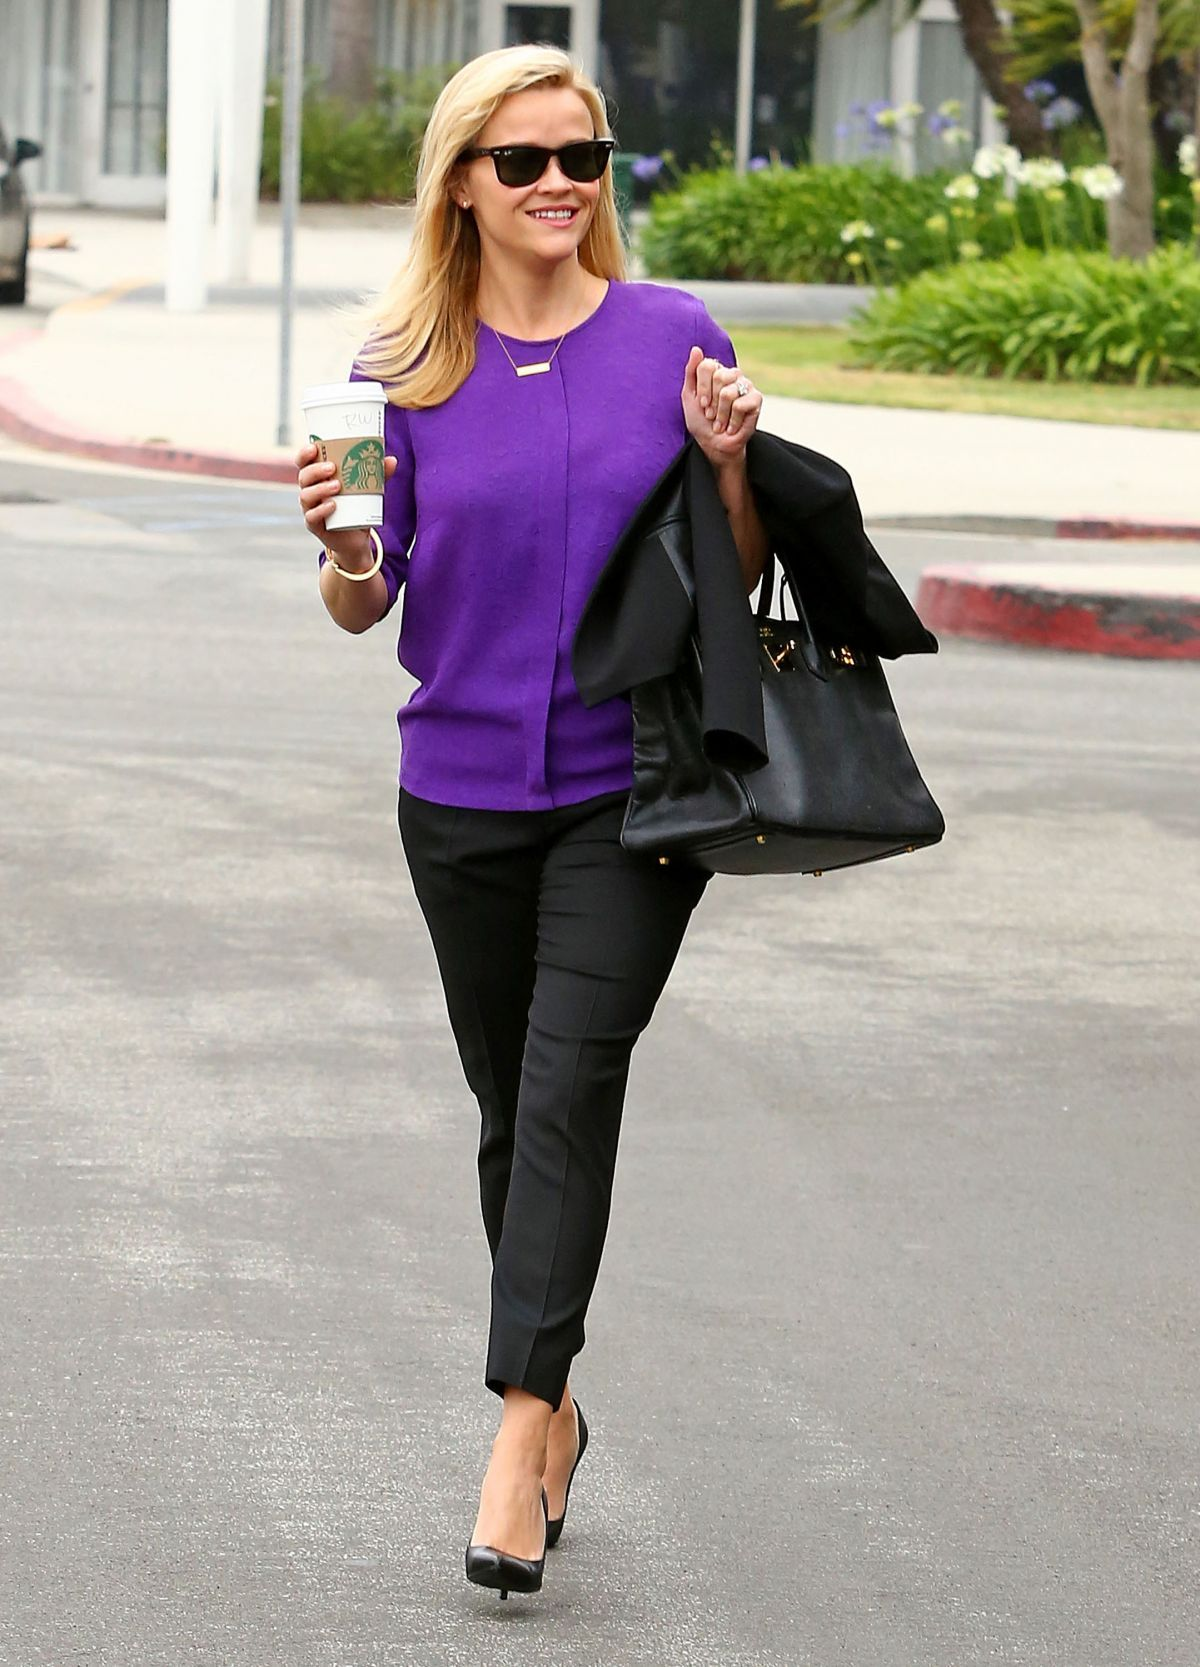 Reese Witherspoon At Courthouse In Santa Monica 06 12 2015